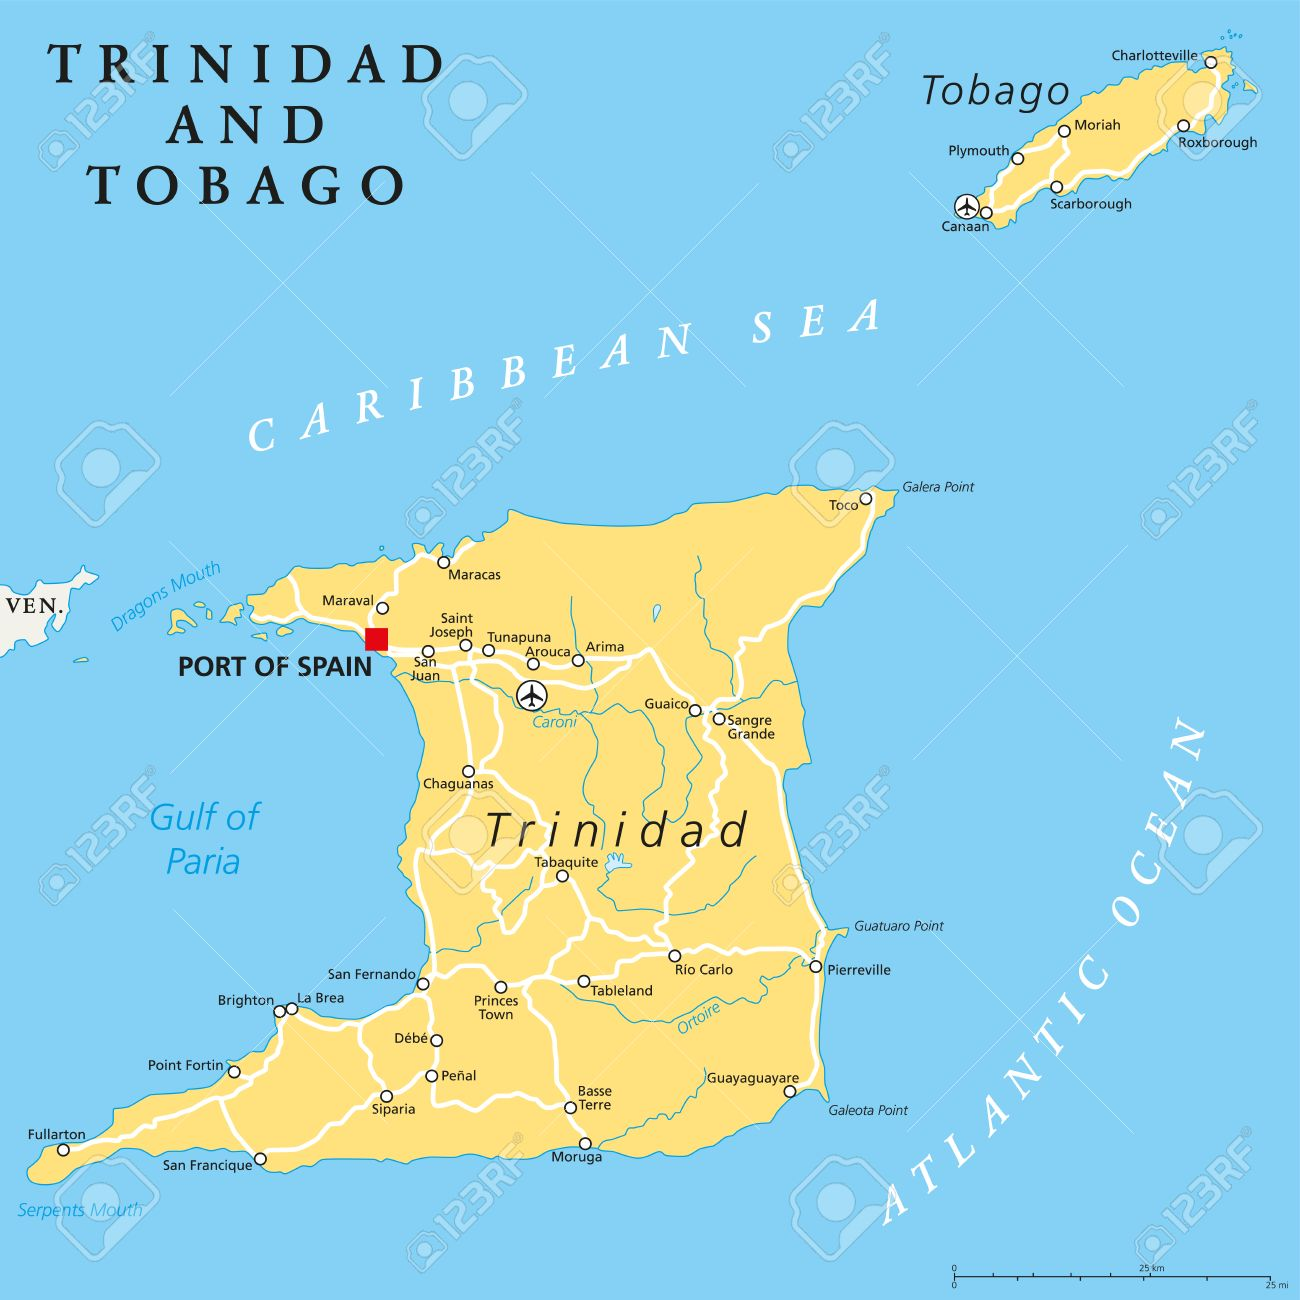 Trinidad And Tobago Political Map With Capital Port Of Spain - Trinidad and tobago map